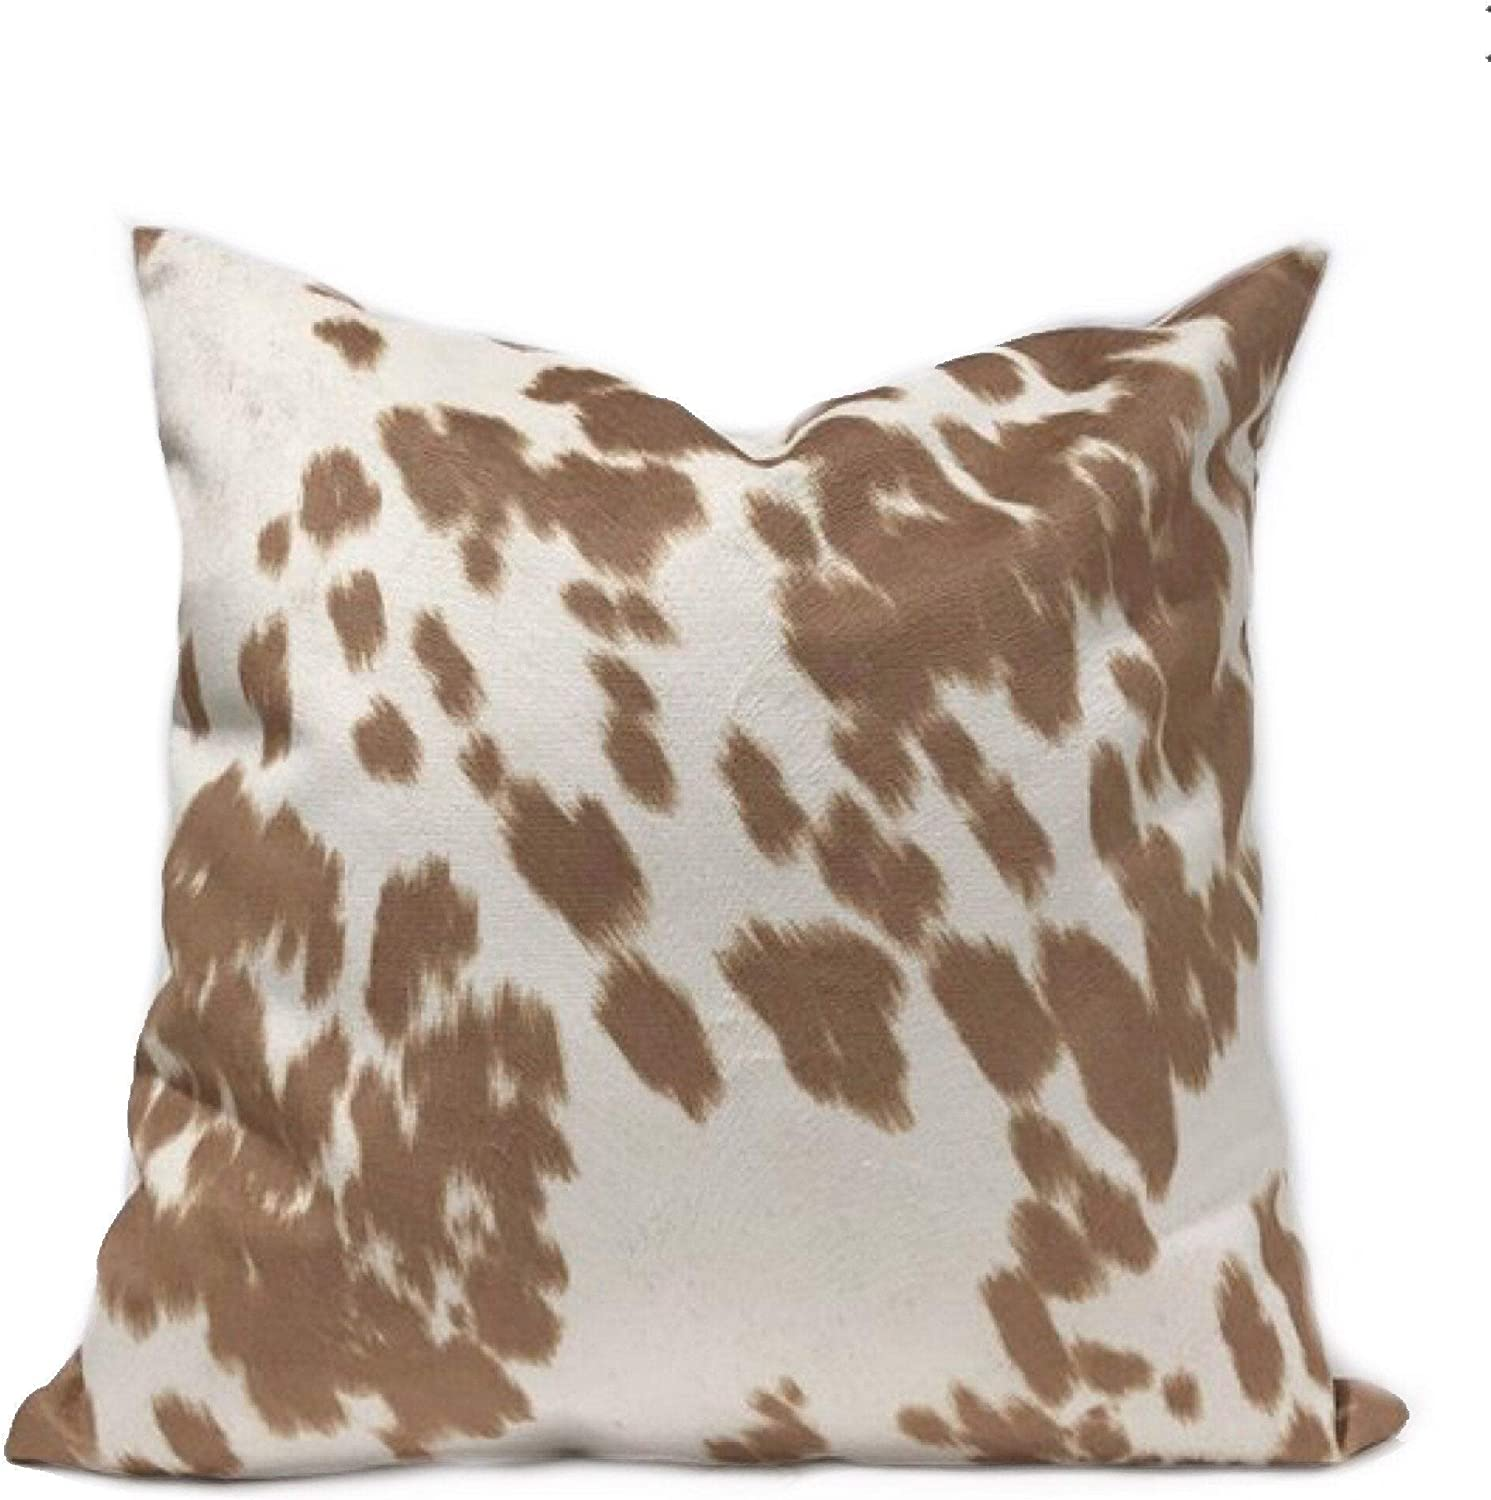 Amazon Com Flowershave357 Faux Cowhide Light Brown Pillow Cover Udder Madness Cow Upholstery Palomino Euro Sham Kidney Lumbar Pillow Case Home Kitchen